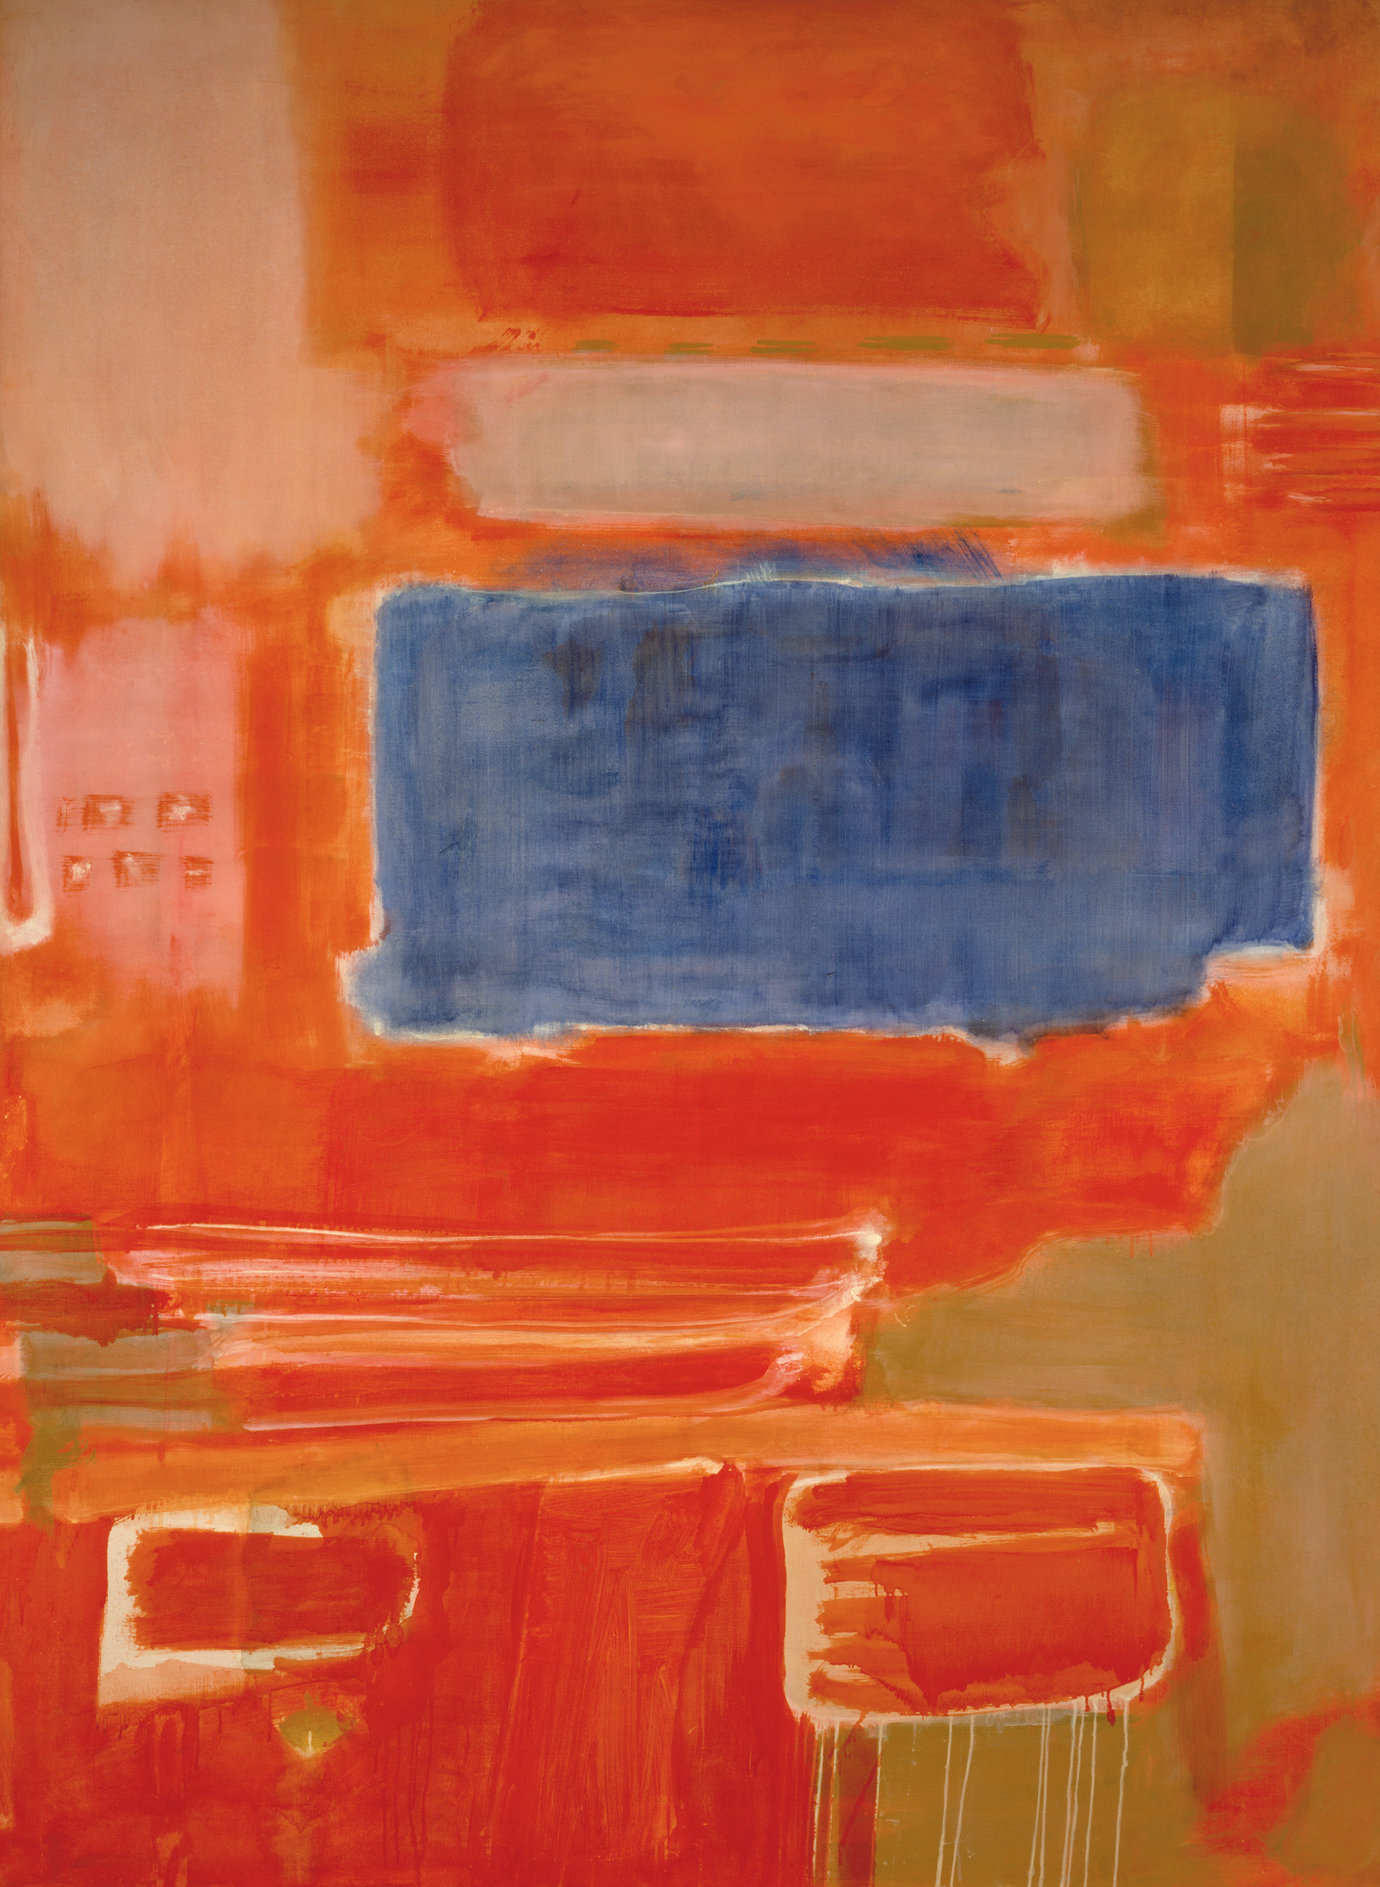 ", 1948. Oil on canvas, 88-7/8 x 65"" (225.7 x 165.1 cm)."